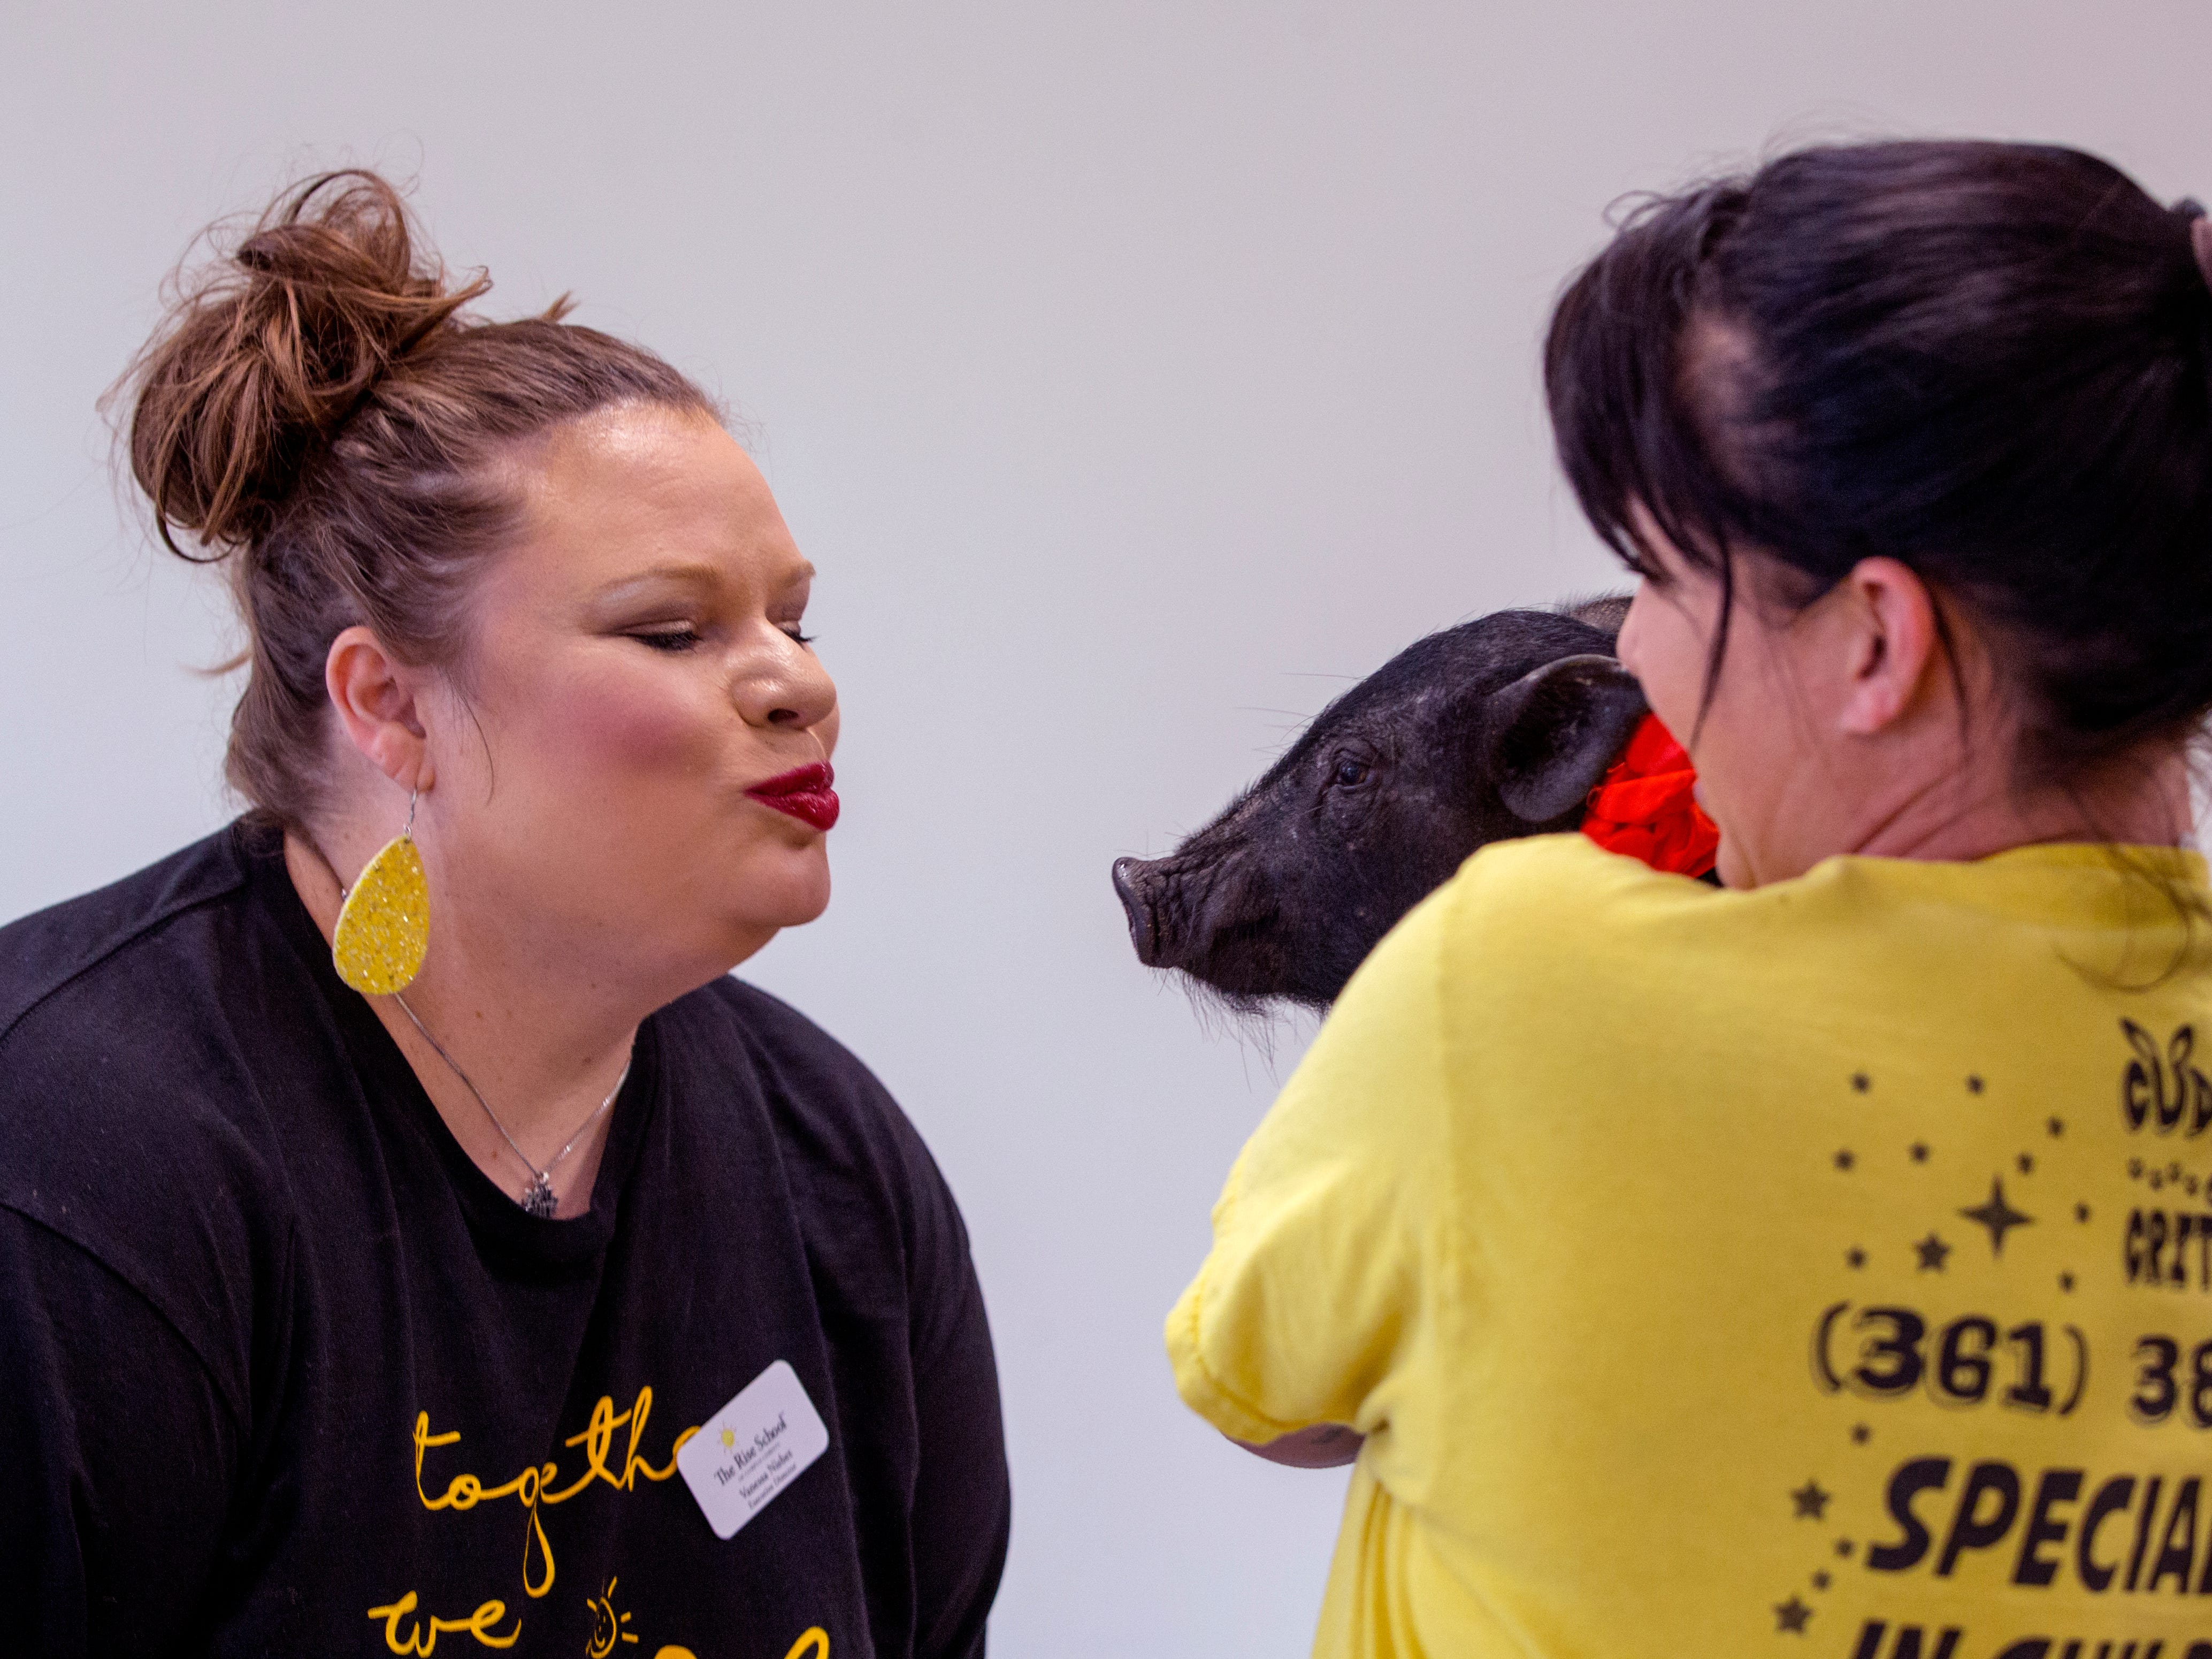 Rise School of Corpus Christi Executive Vanessa Nisbet (left) gets ready to kiss Hammy, held by Jonna Rains, on Friday, March 8, 2019. She promised students she would kiss a pig if parents raised over $50,000 at the school's annual 5K, they raised close to $80,000.